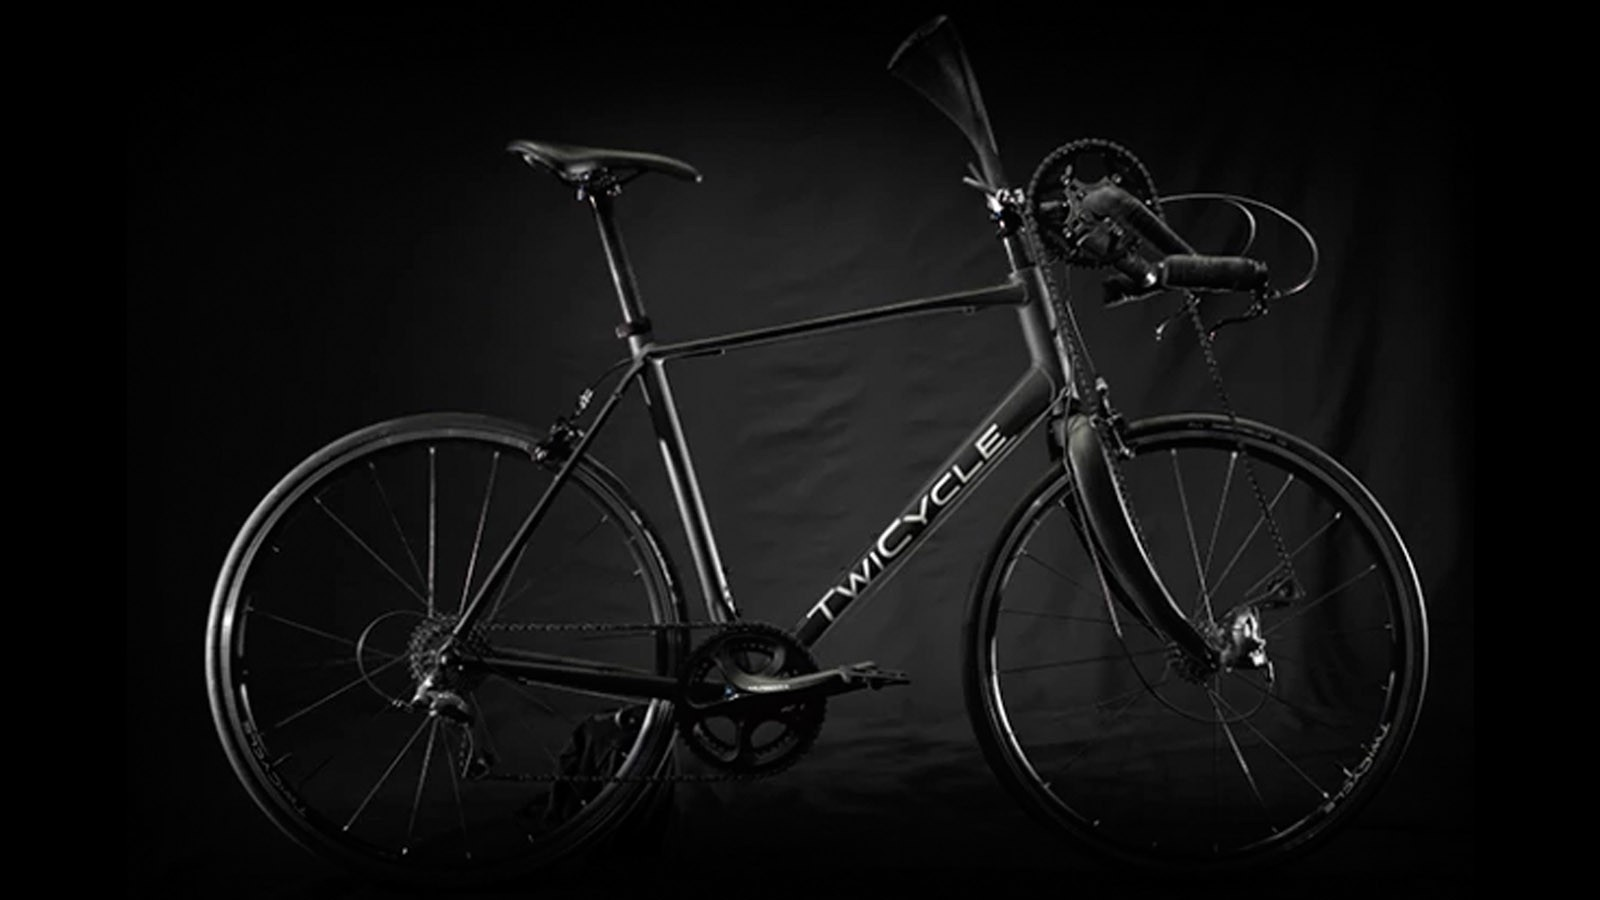 Though we may joke about the Twicycle being silly, it's nearly meet its US$50,000 dollar crowdfunding goal